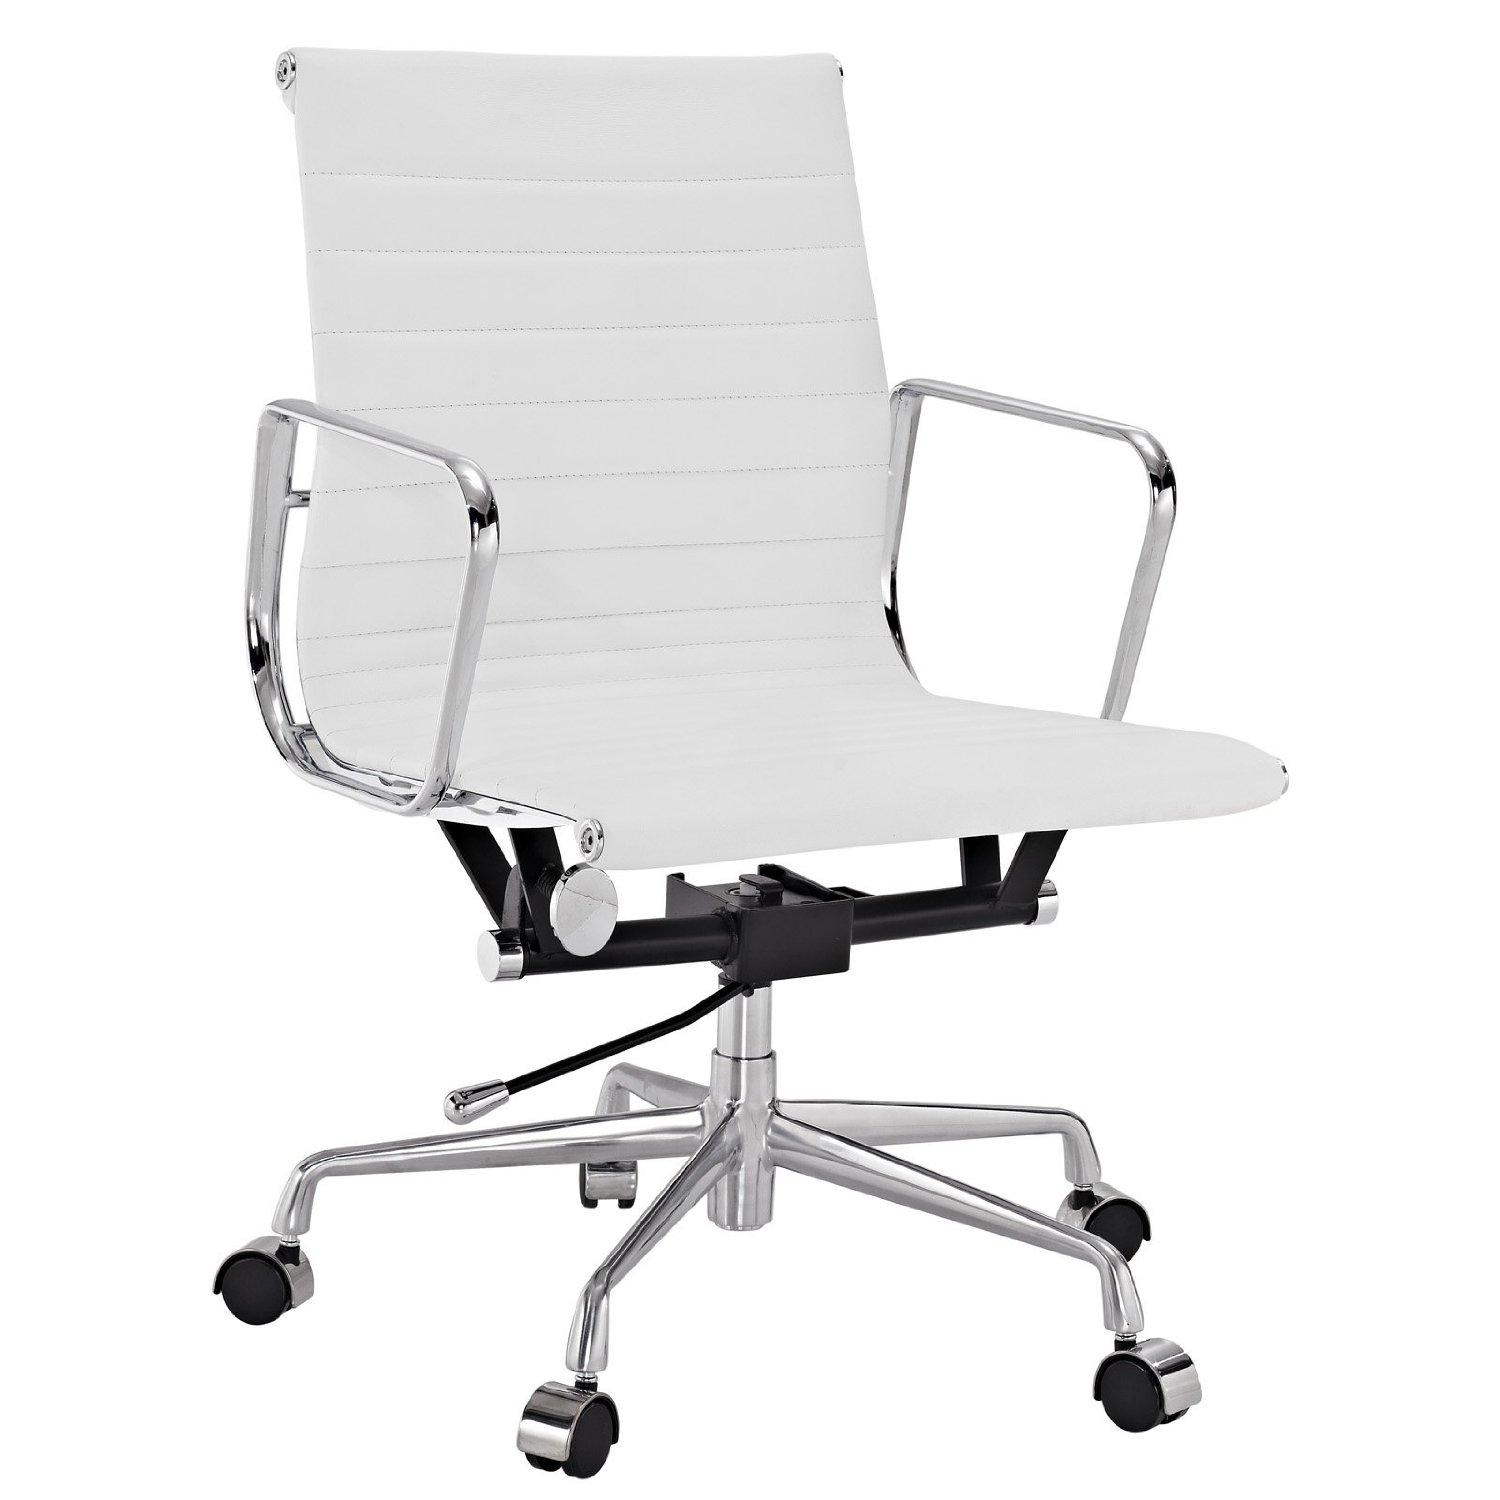 back support office chairs south africa counter height table and canada amazon lexmod ribbed mid chair in white